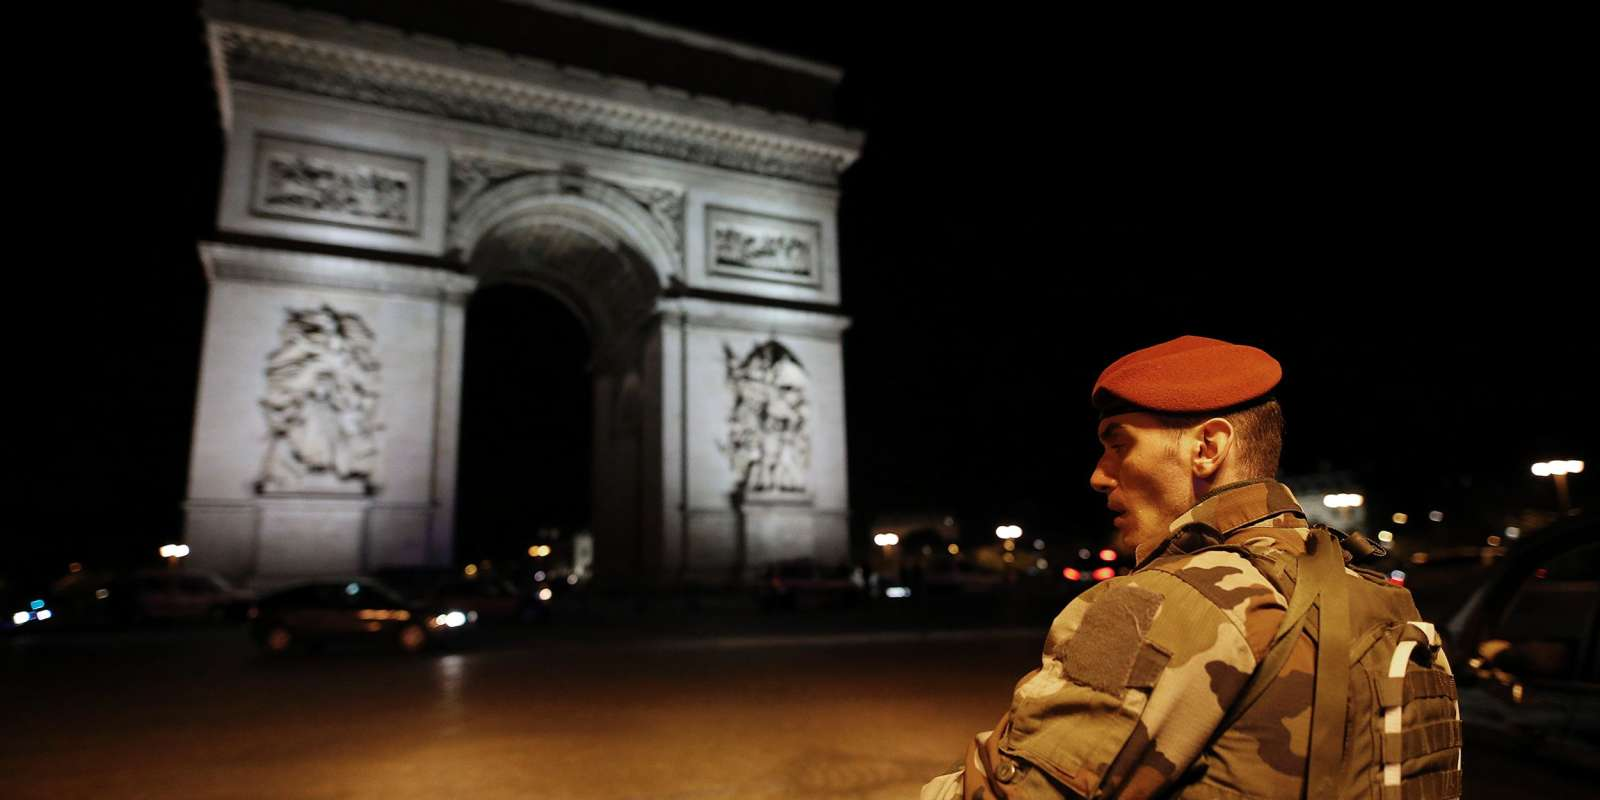 A soldier stand guards near the Arc de Triomphe after a shooting at the Champs Elysees in Paris on April 20, 2017. One police officer was killed and another wounded today in a shooting on Paris's Champs Elysees, police said just days ahead of France's presidential election. France's interior ministry said the attacker was killed in the incident on the world famous boulevard that is popular with tourists. / AFP / Benjamin Cremel